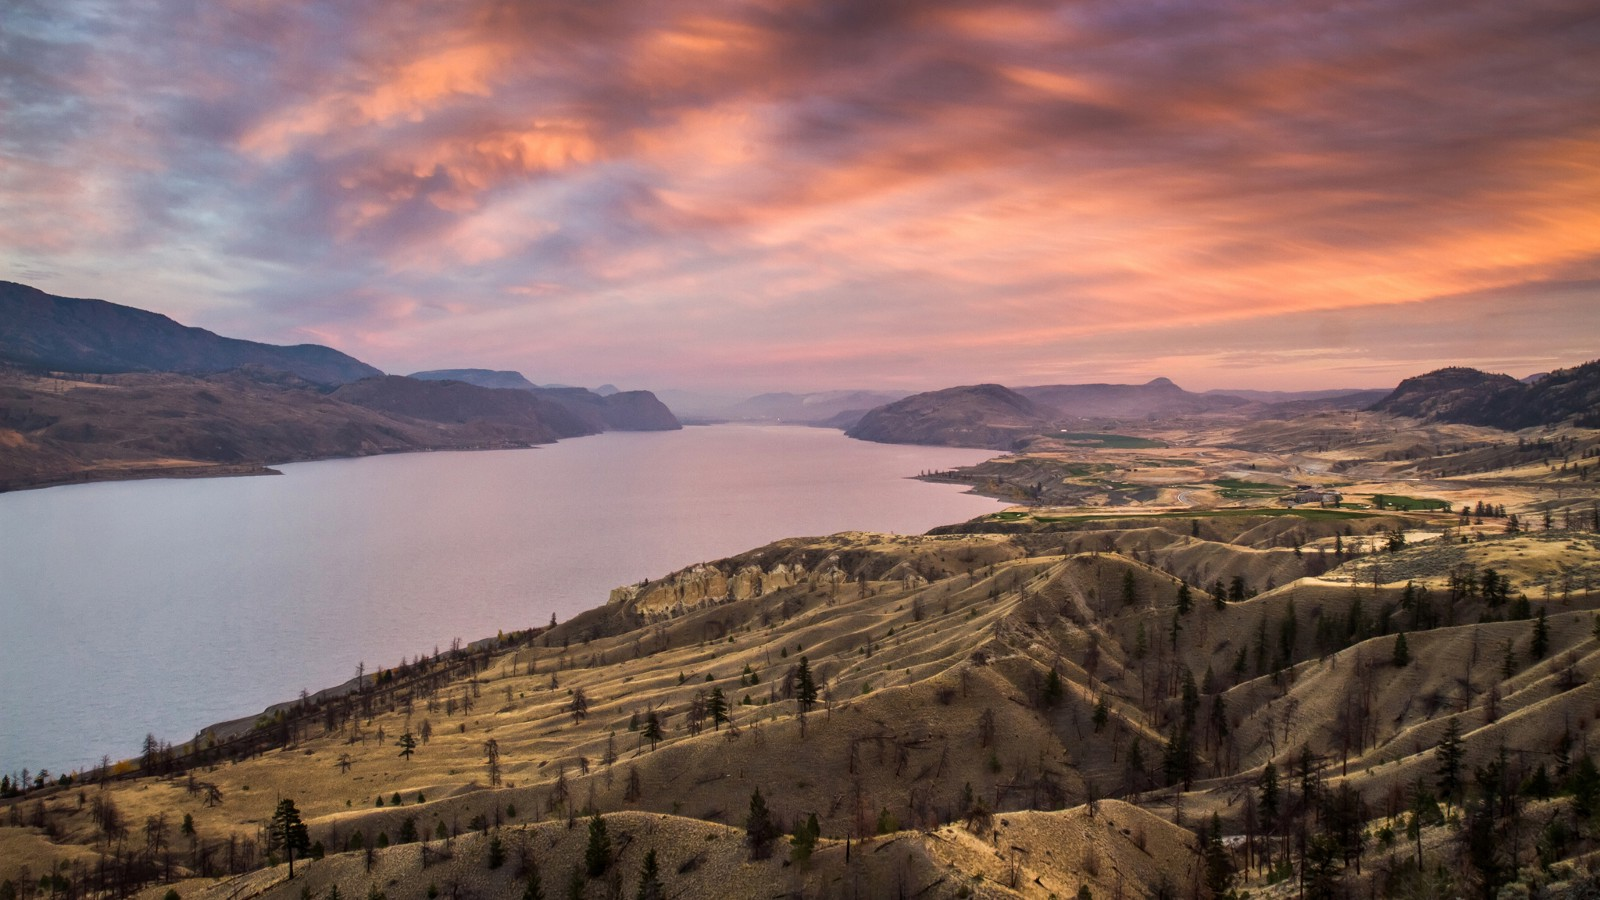 Kamloops Lake in British Columbia, Canada